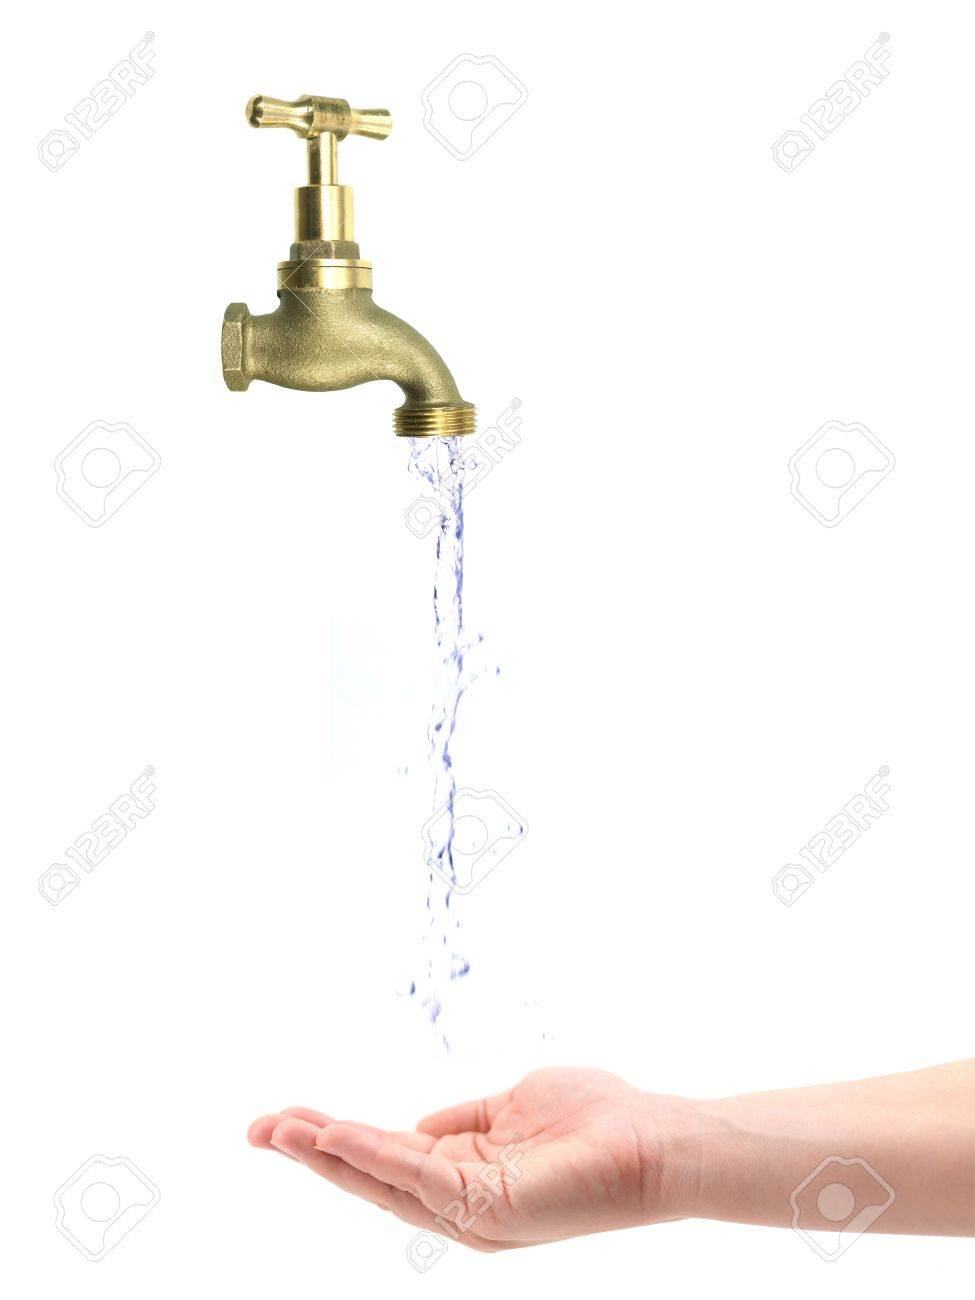 A tap isolated against a white background Stock Photo - 10932548